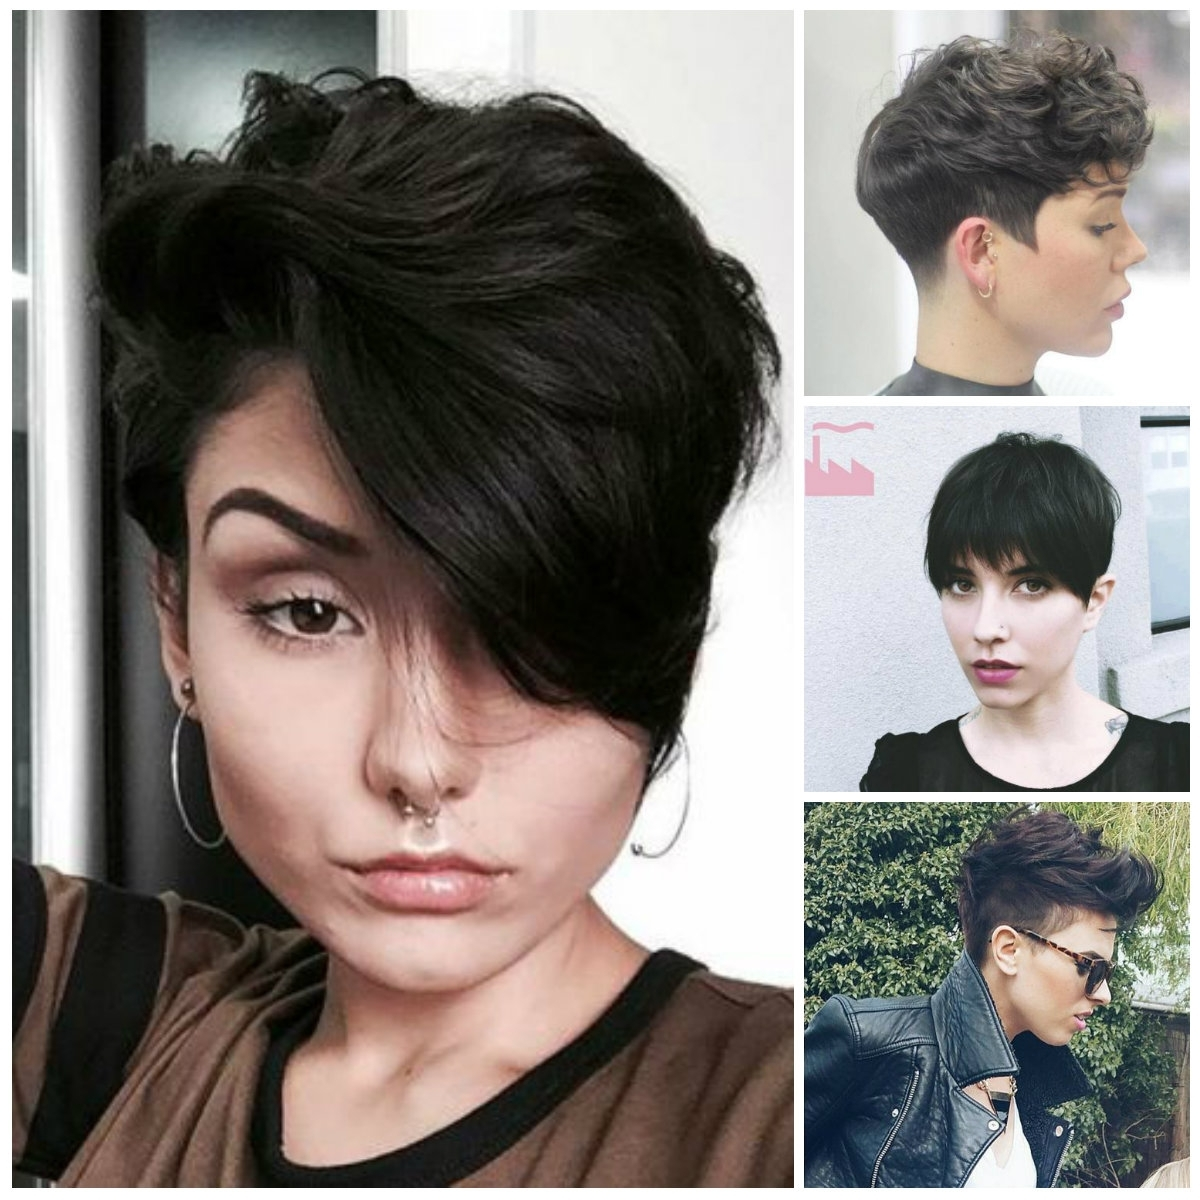 Pixie Haircuts For Thick Hair   2017 Haircuts, Hairstyles And Hair Regarding Current Thick Pixie Hairstyles (View 10 of 15)